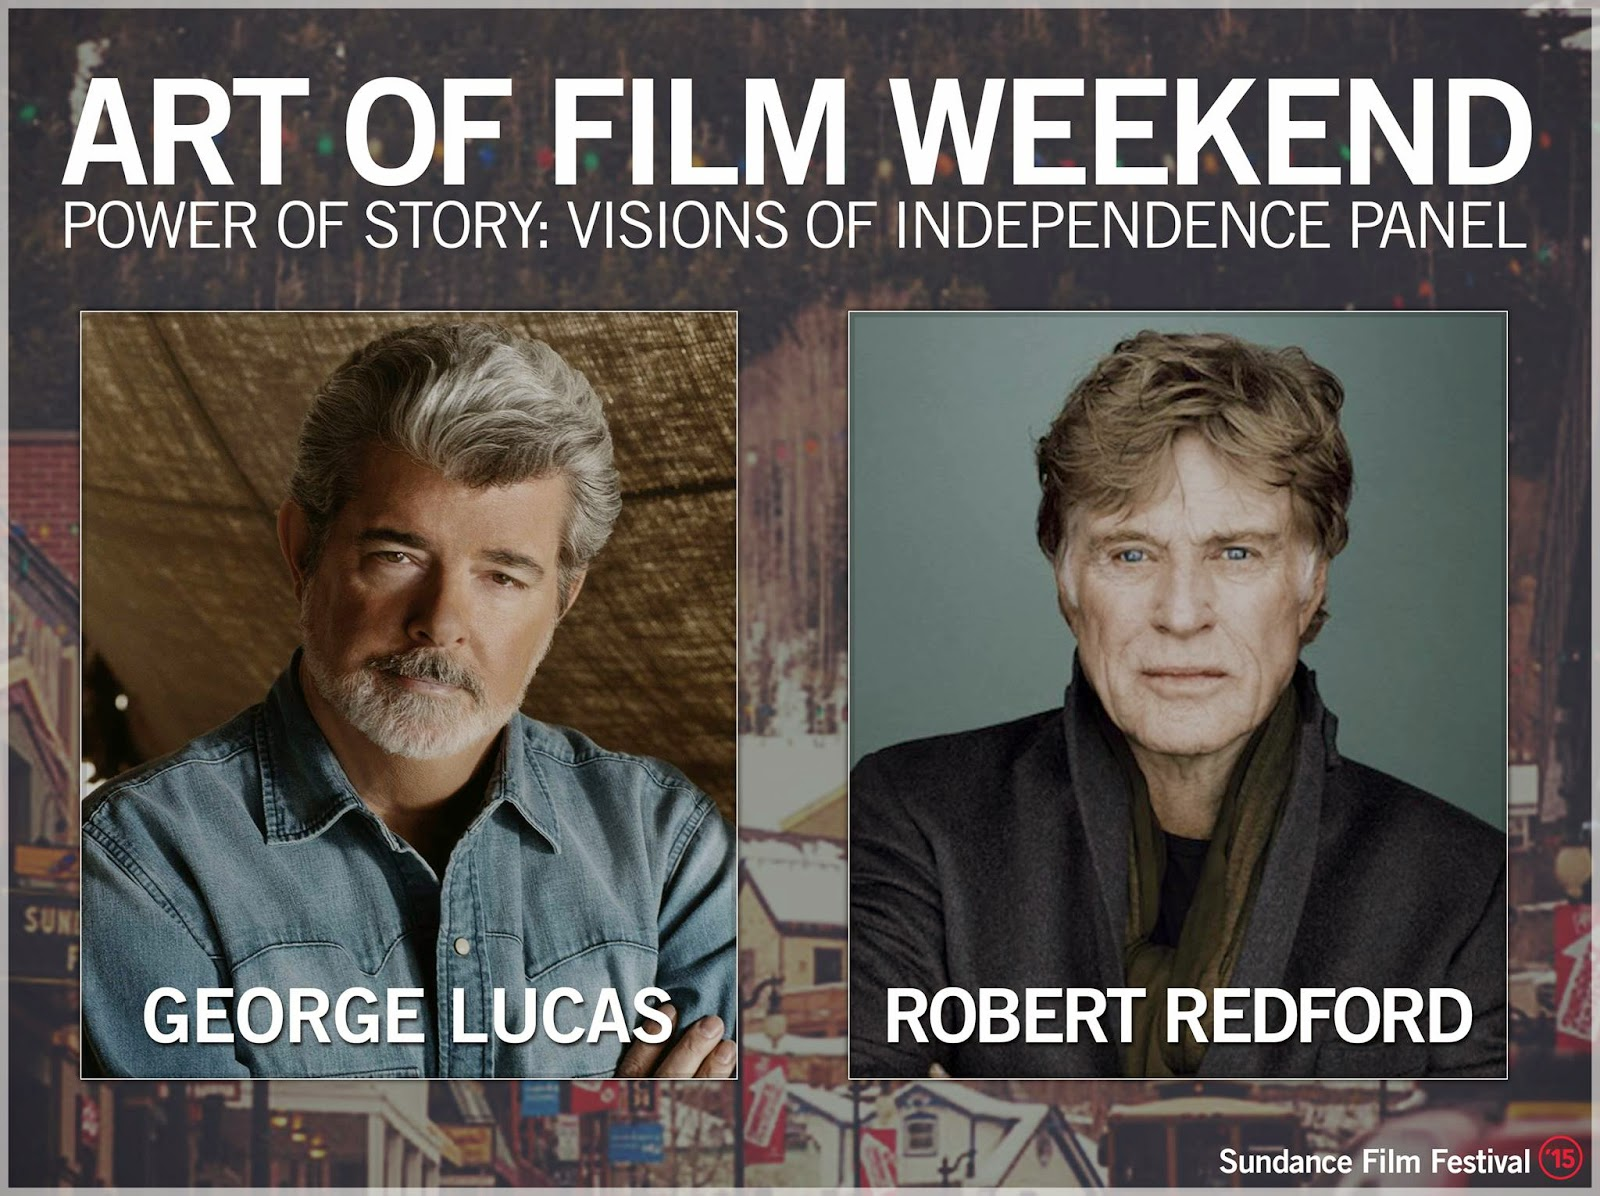 George Lucas, Robert Redford, Power of Story, Sundance Film Festval 2015, Filmcastlive, George Leon photographer